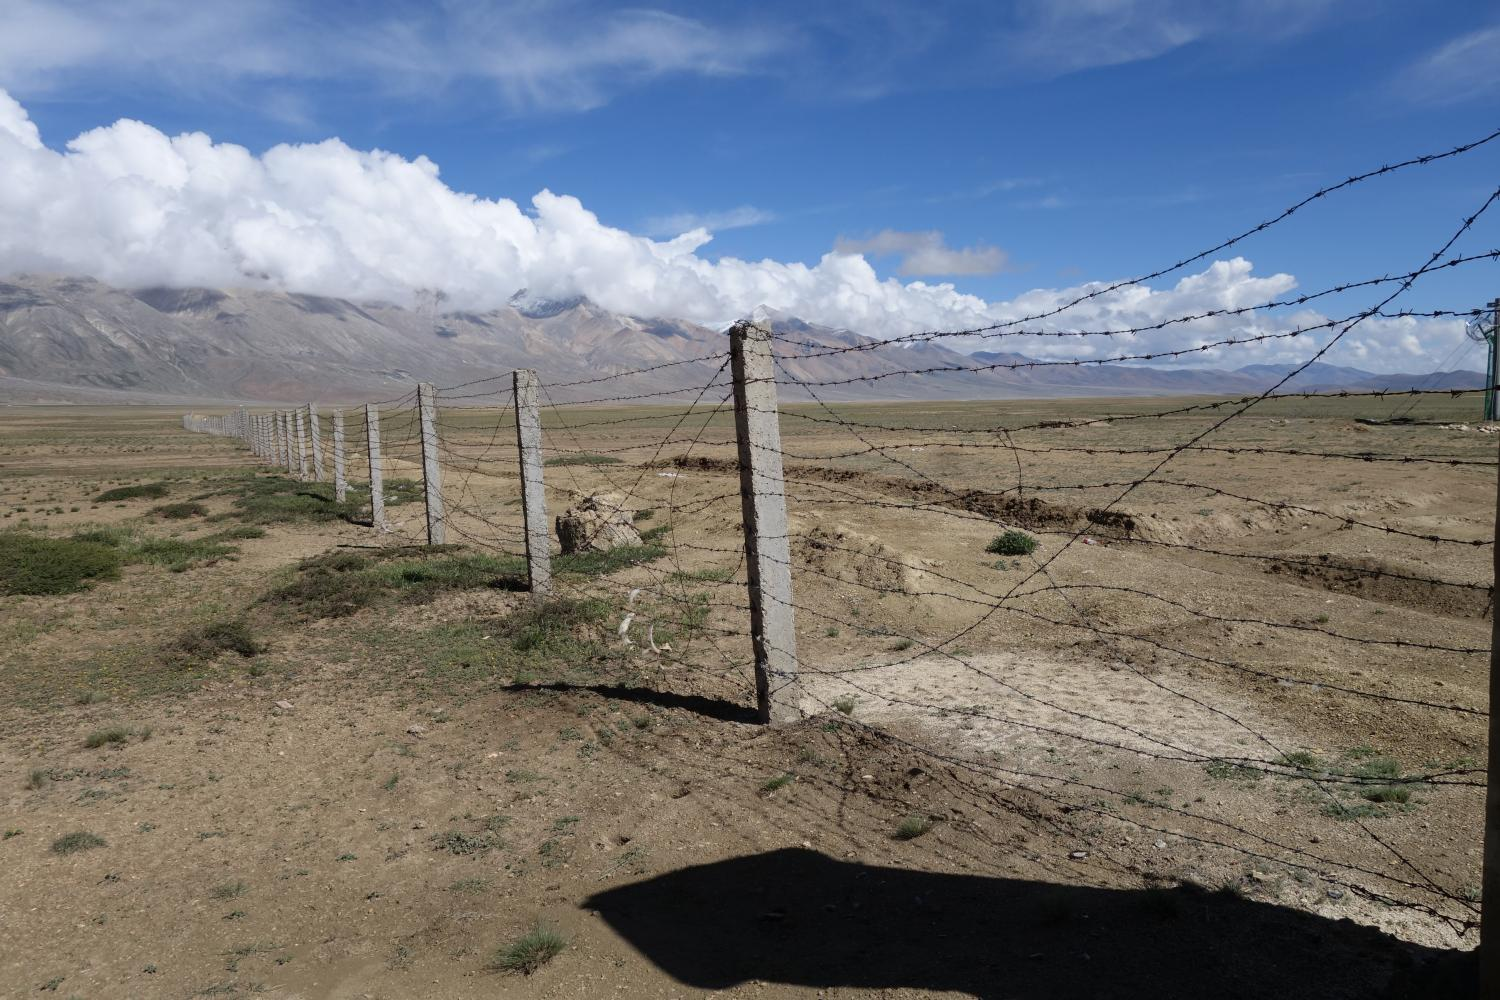 Constructed in the early 2000s, the Chinese fence across the Kora-la now restricts crossings of the China-Nepal border to just two times per year between Likse and Neychung.